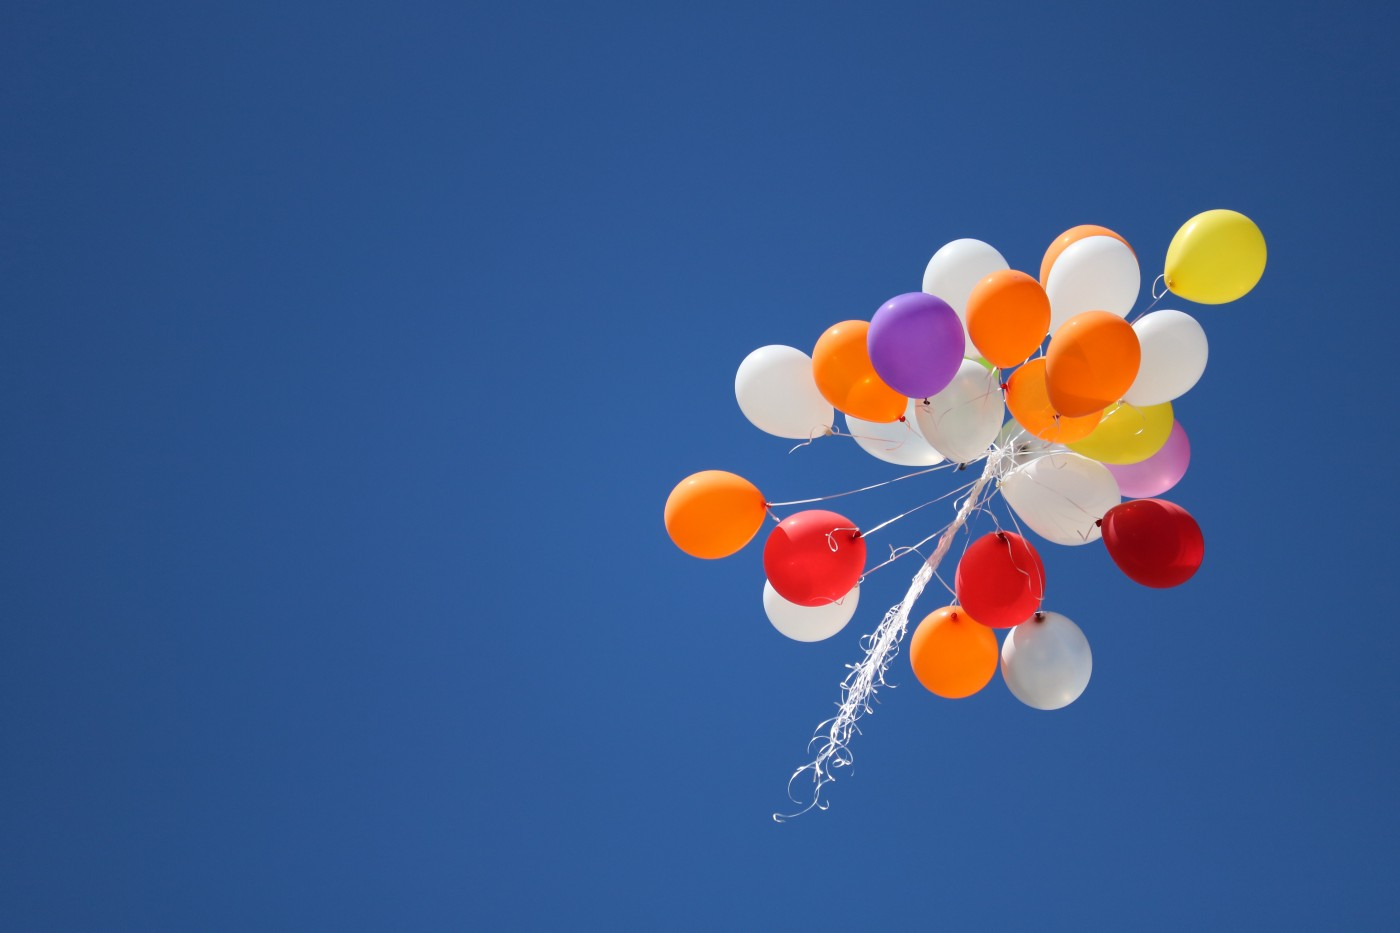 A bunch of colourful helium balloons is floating up through a clear blue sky.